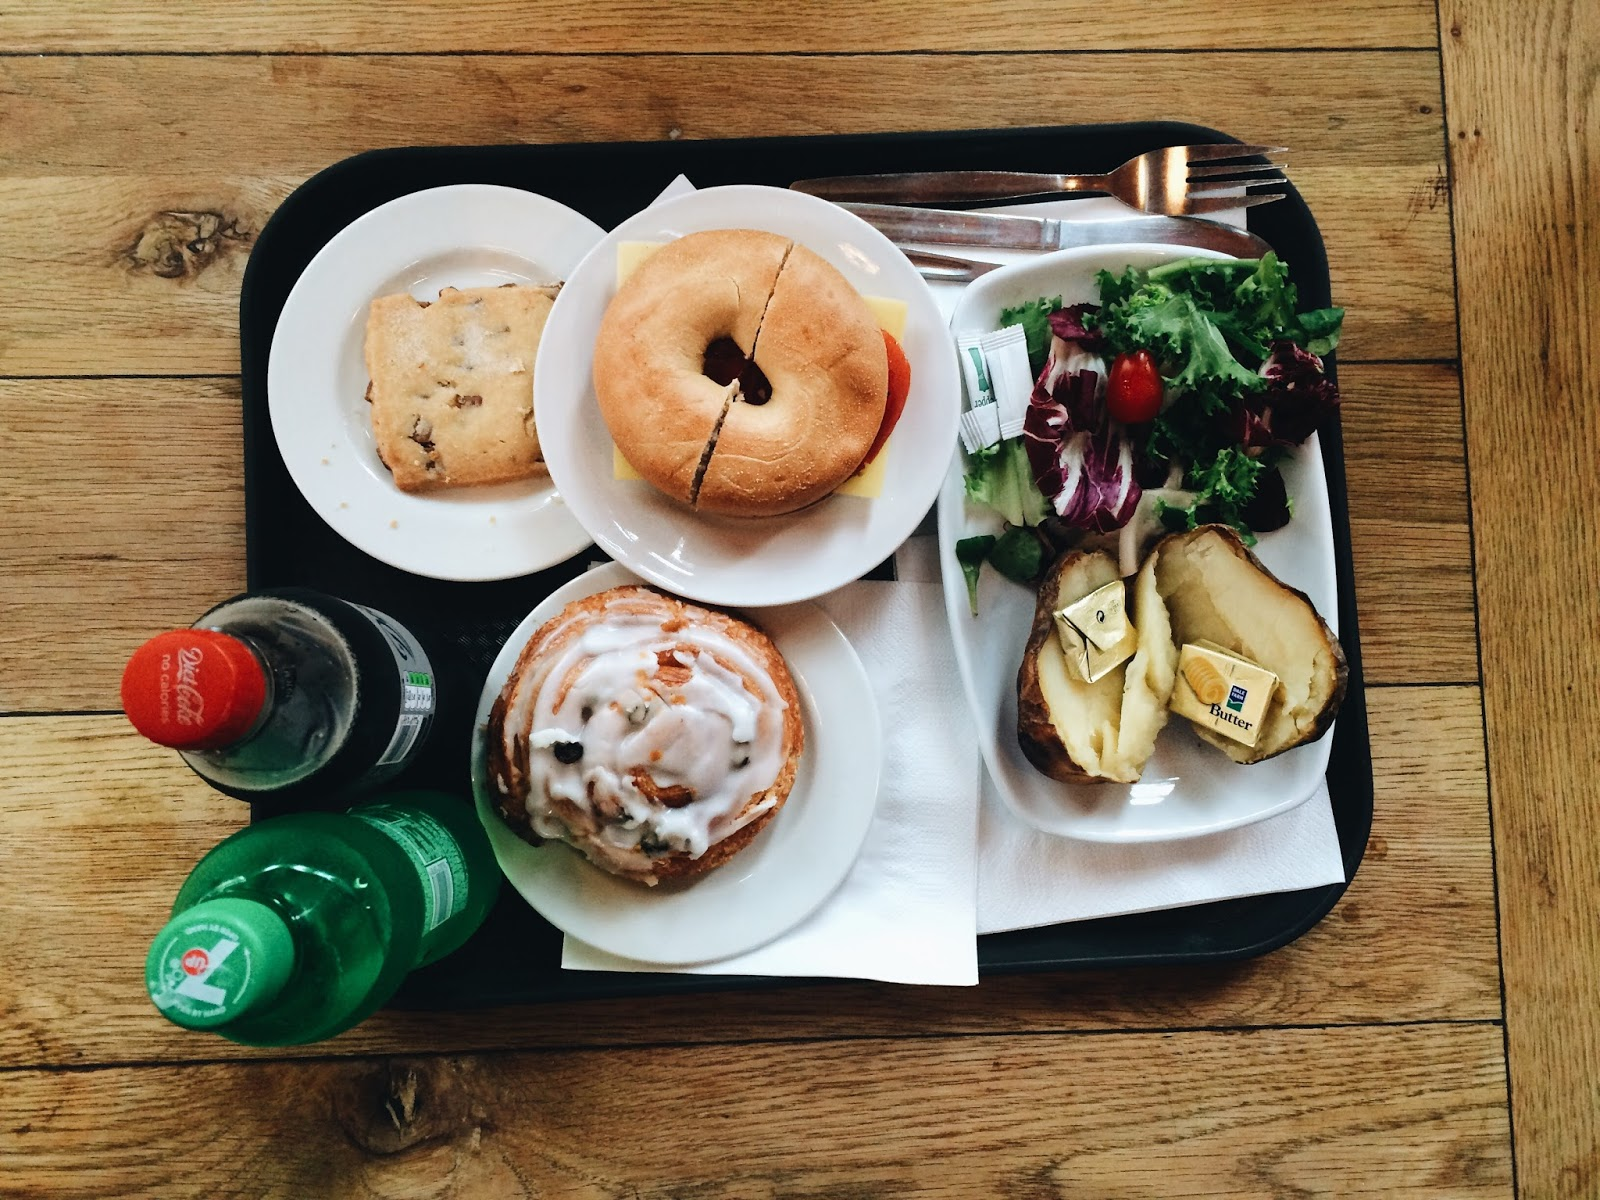 bagel and jacket potato lunch in Windsor, England